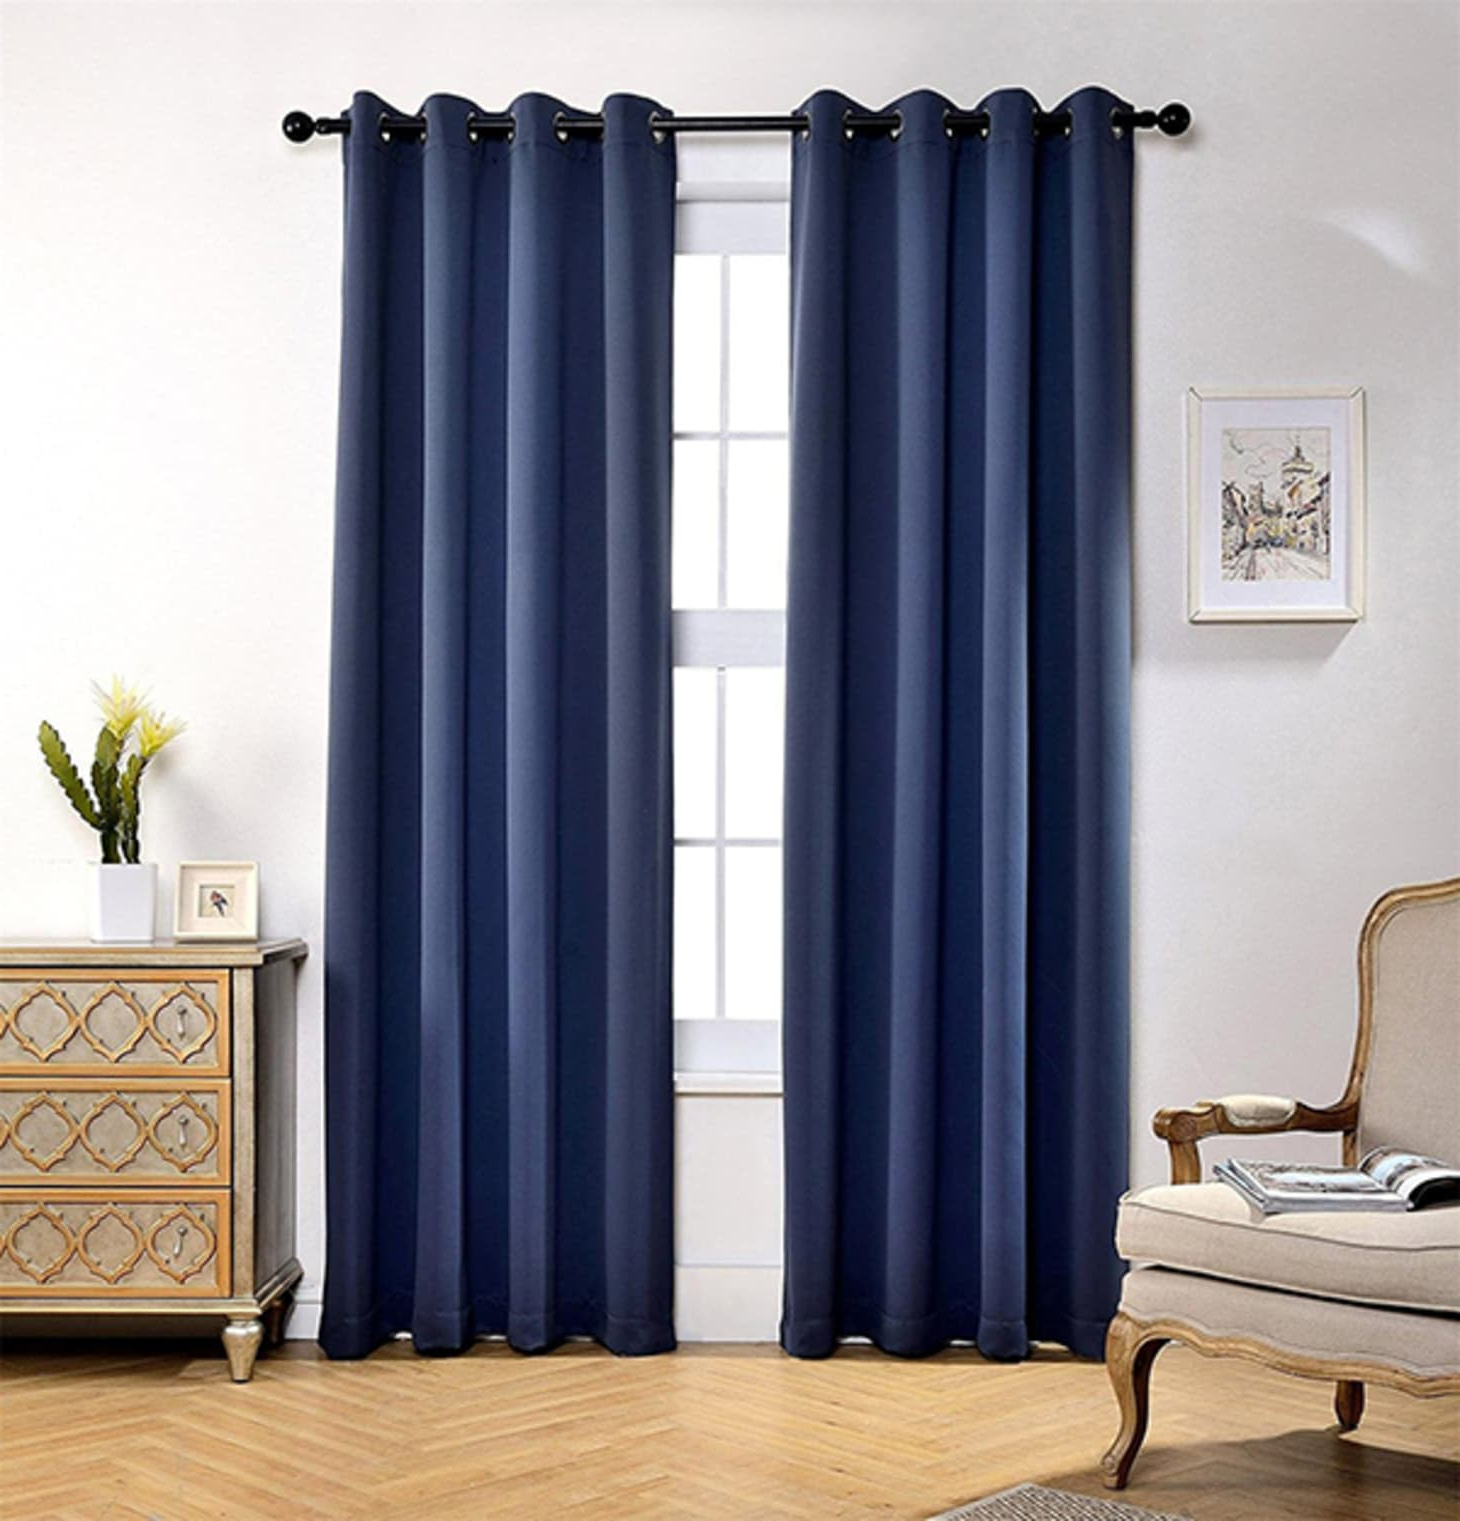 Apartment Therapy Intended For 2020 Insulated Cotton Curtain Panel Pairs (View 9 of 20)